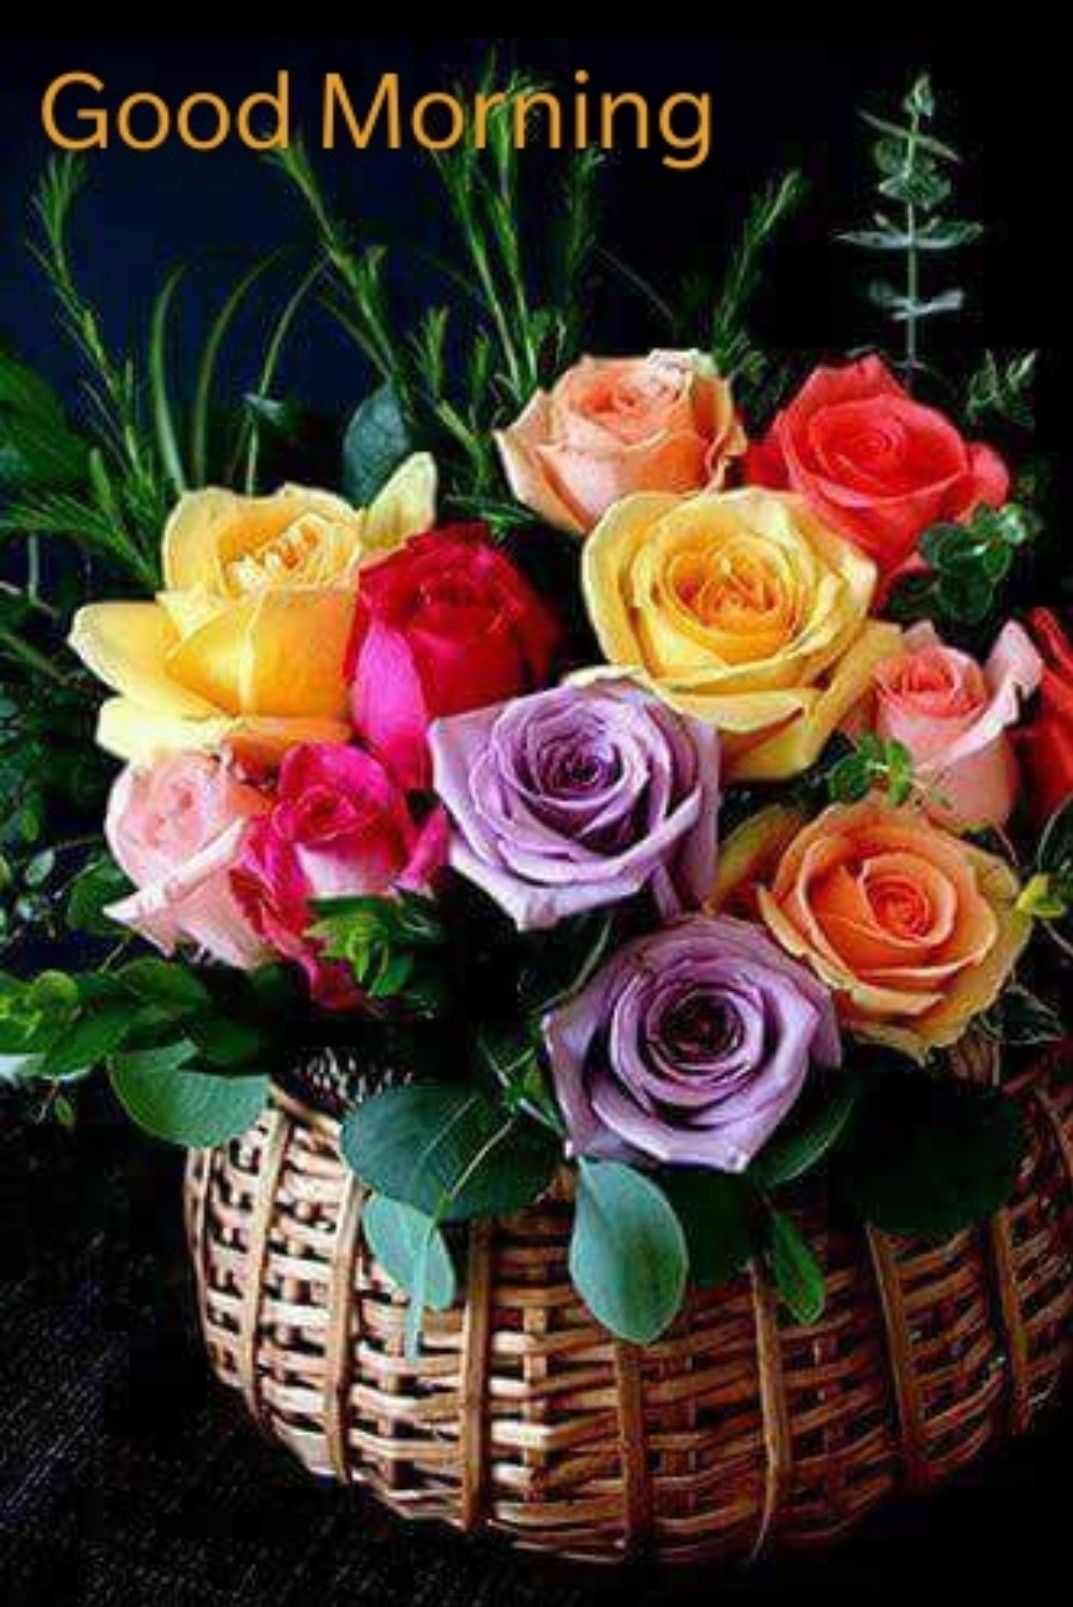 Good morning with colourful roses in wooden basket v good morning with colourful roses in wooden basket izmirmasajfo